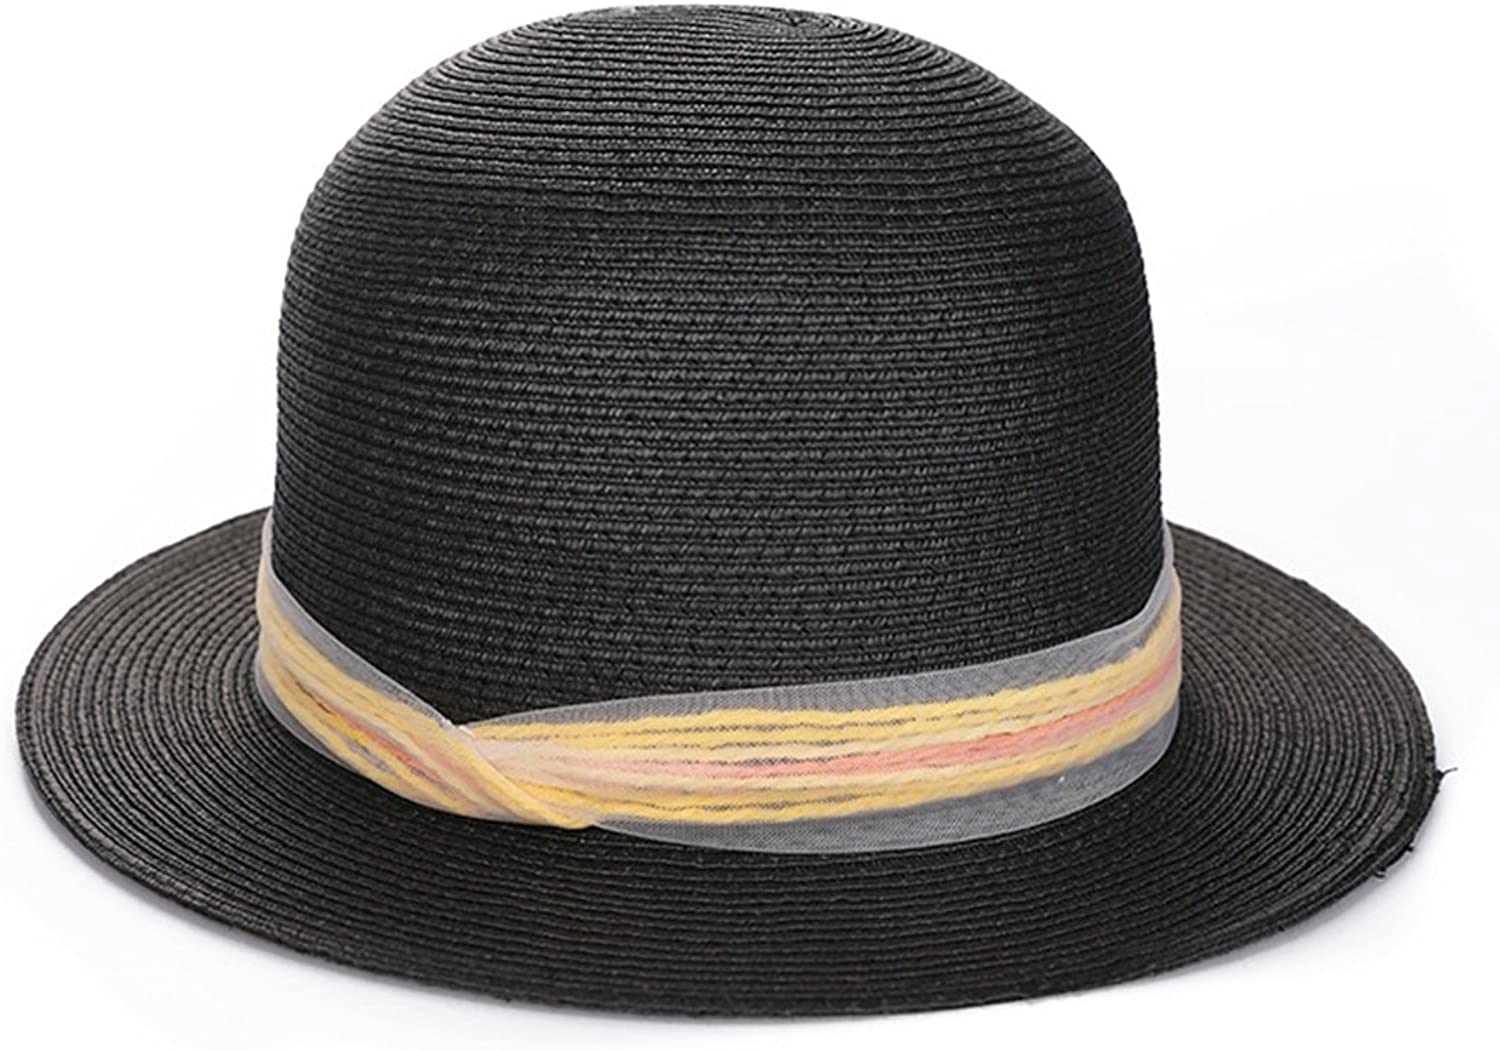 LBY Spring and Summer Hats, Wide Beaches, Beaches, Sun Hats, Collapsible Sun Hats, Small Fresh Fashion, Shopping, Straw Hats Sun Hats (color   Black, Size   M(5658cm))